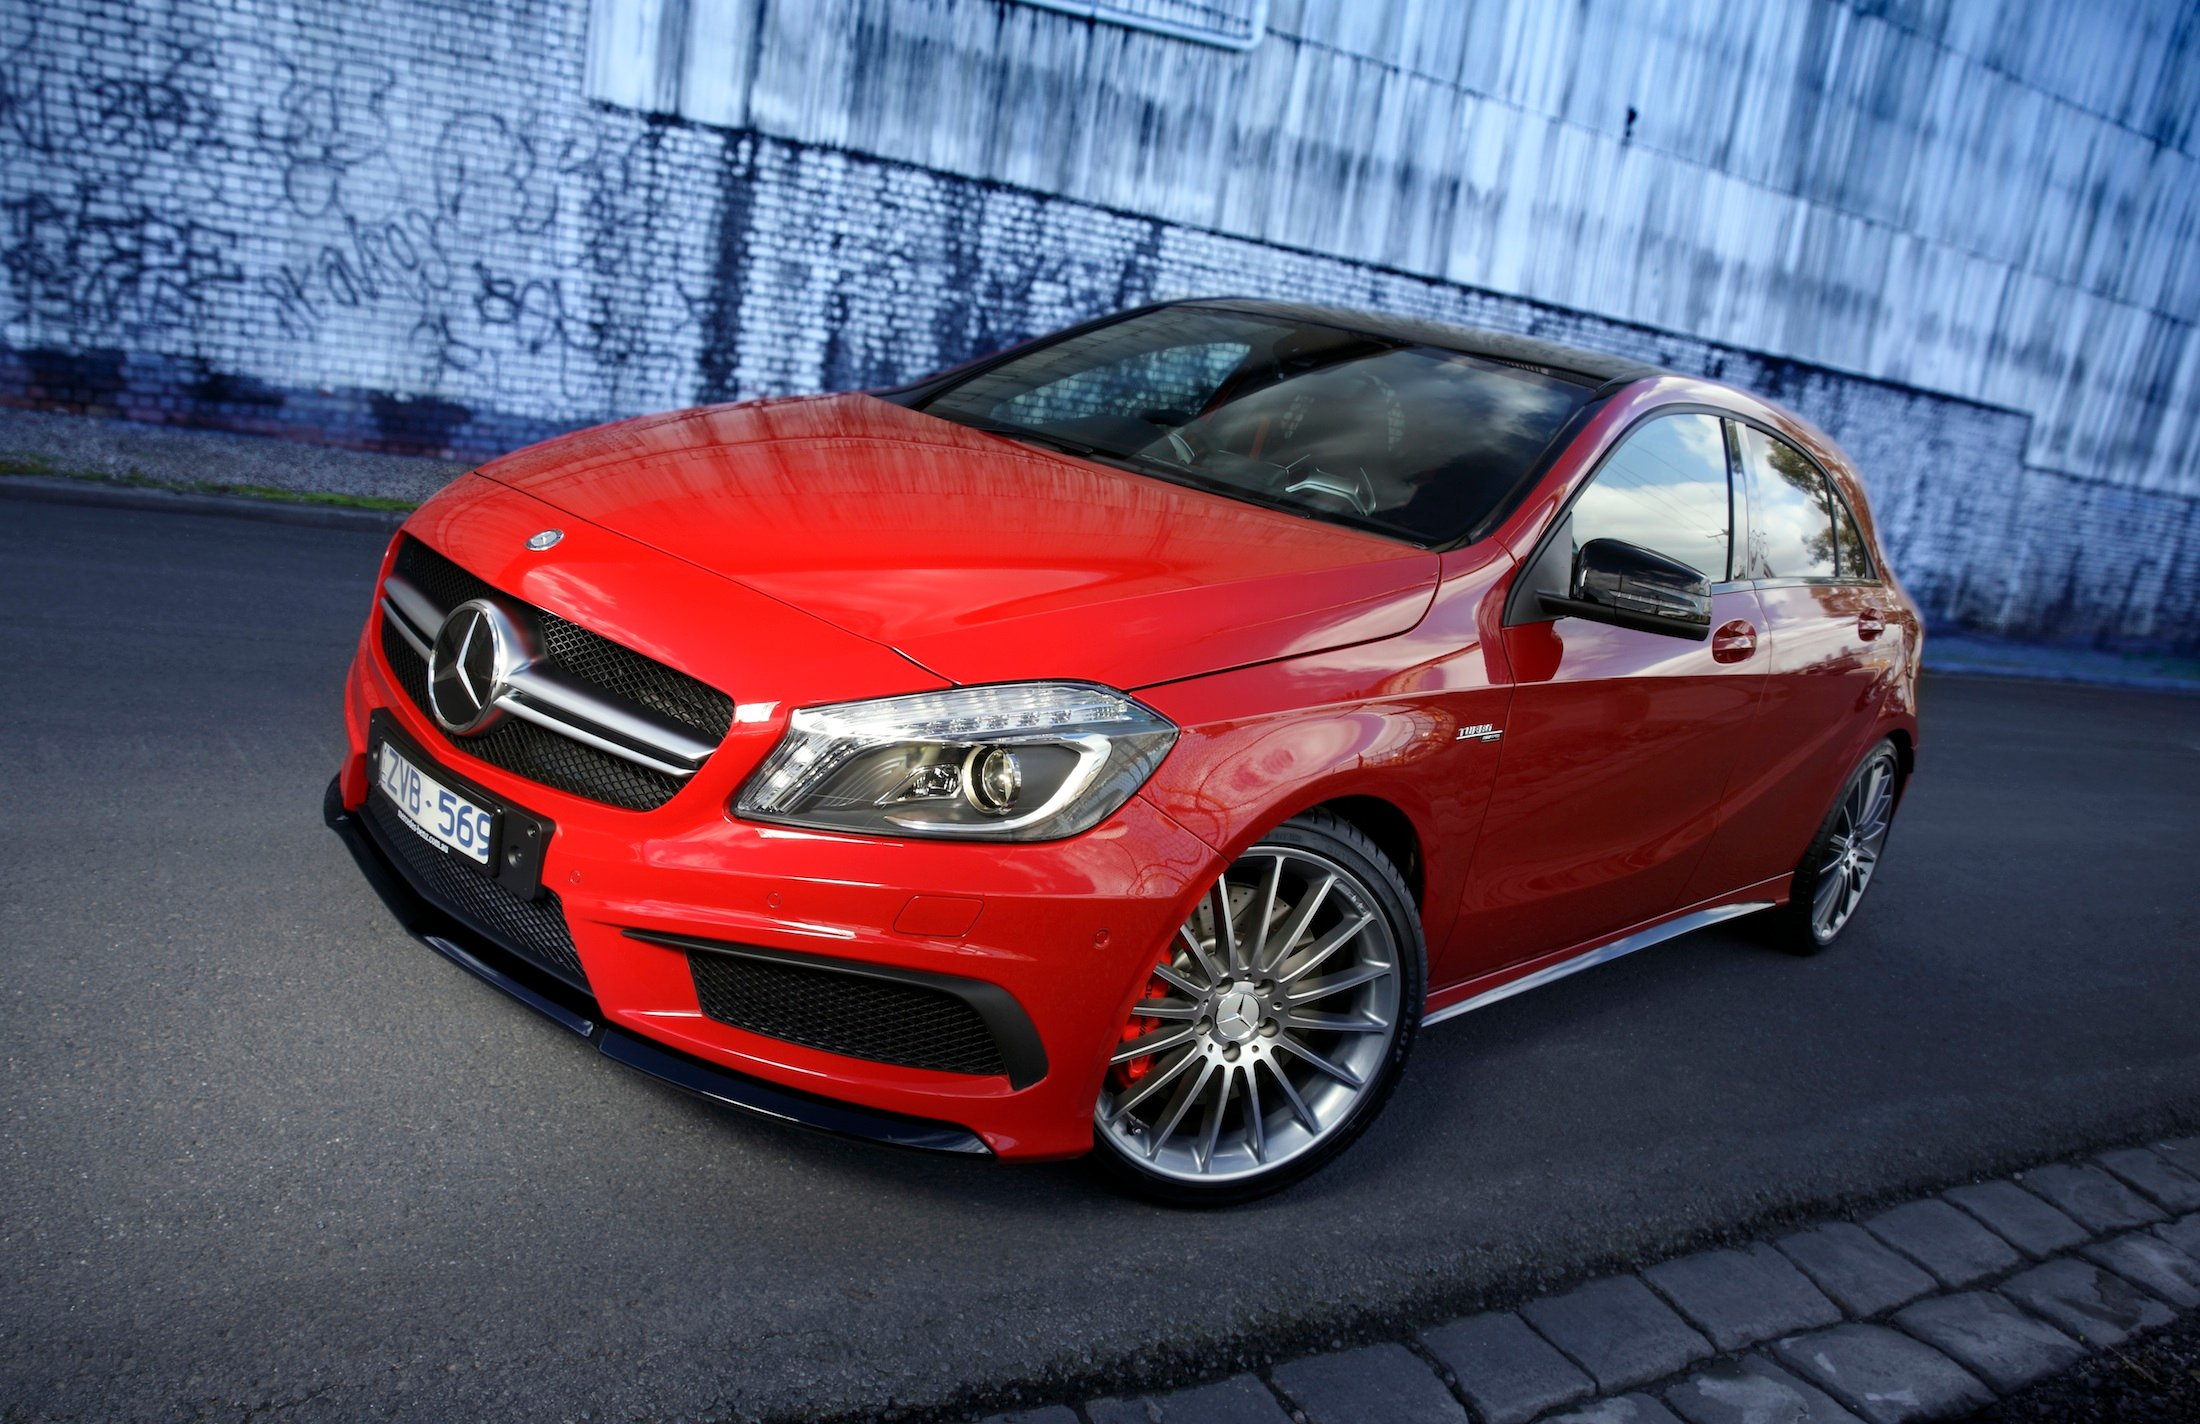 Mercedes benz a45 amg targets younger performance buyers for Performance mercedes benz